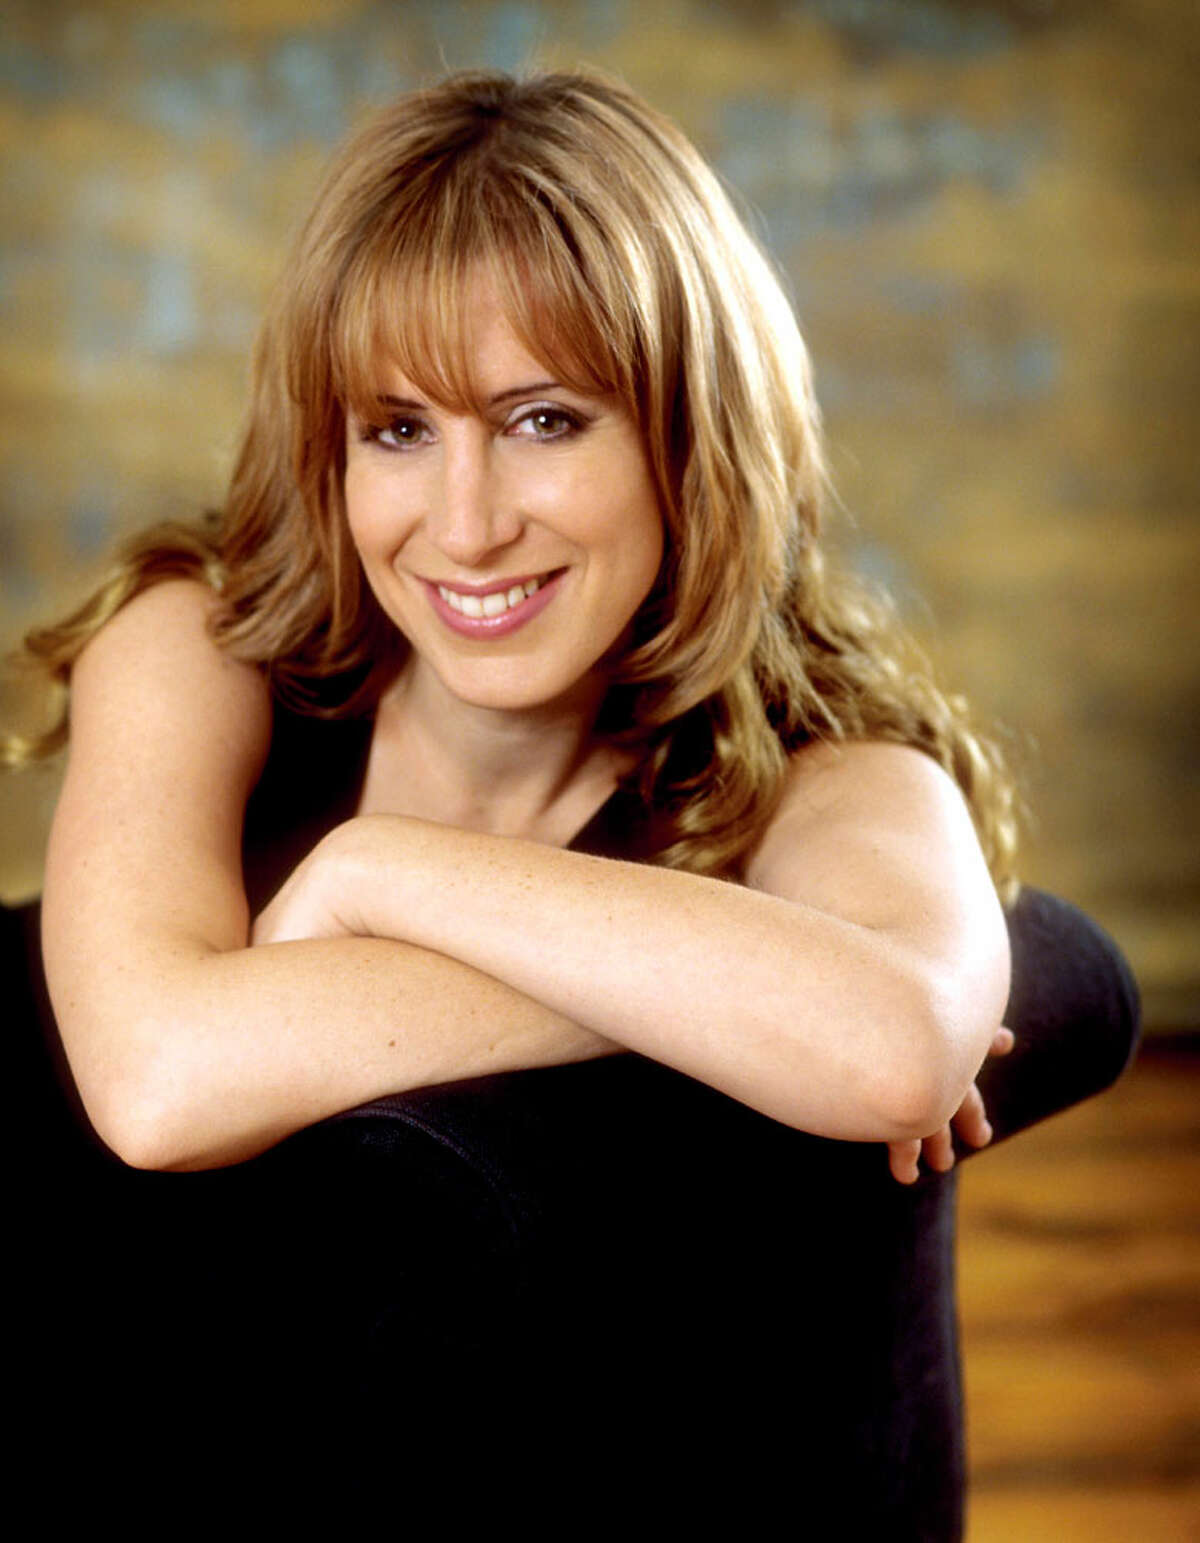 Ingrid Fliter will play Mozart's Piano Concerto No. 23 with the Houston Symphony.